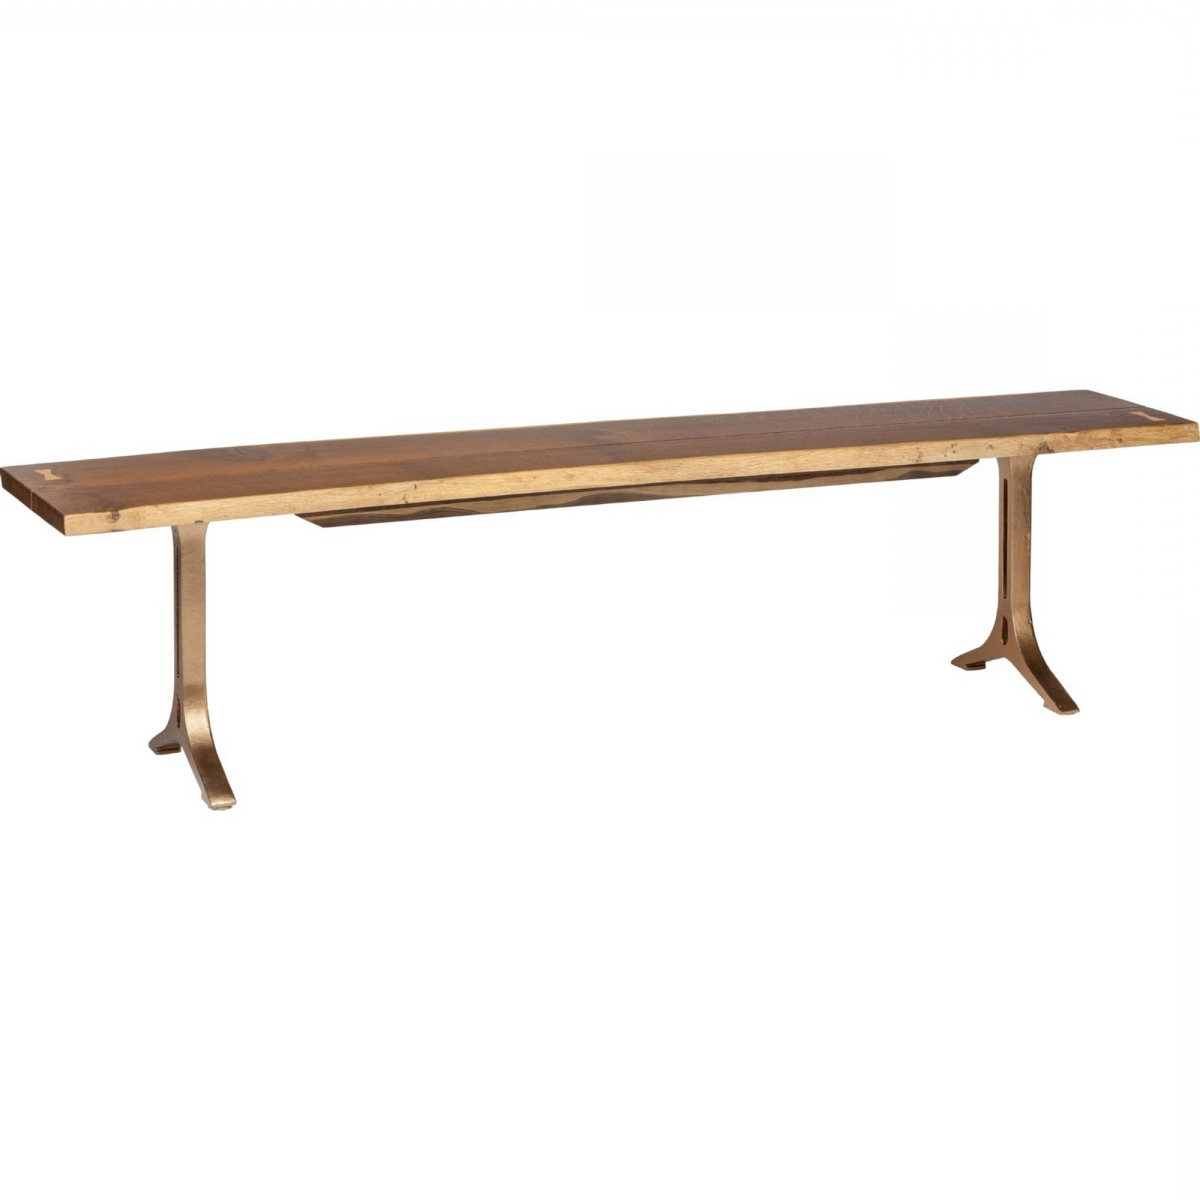 Samara Dining Bench In Smoked Oak Bronzed Gilt 71 Throughout Most Up To Date Dining Tables In Smoked/seared Oak (View 17 of 30)